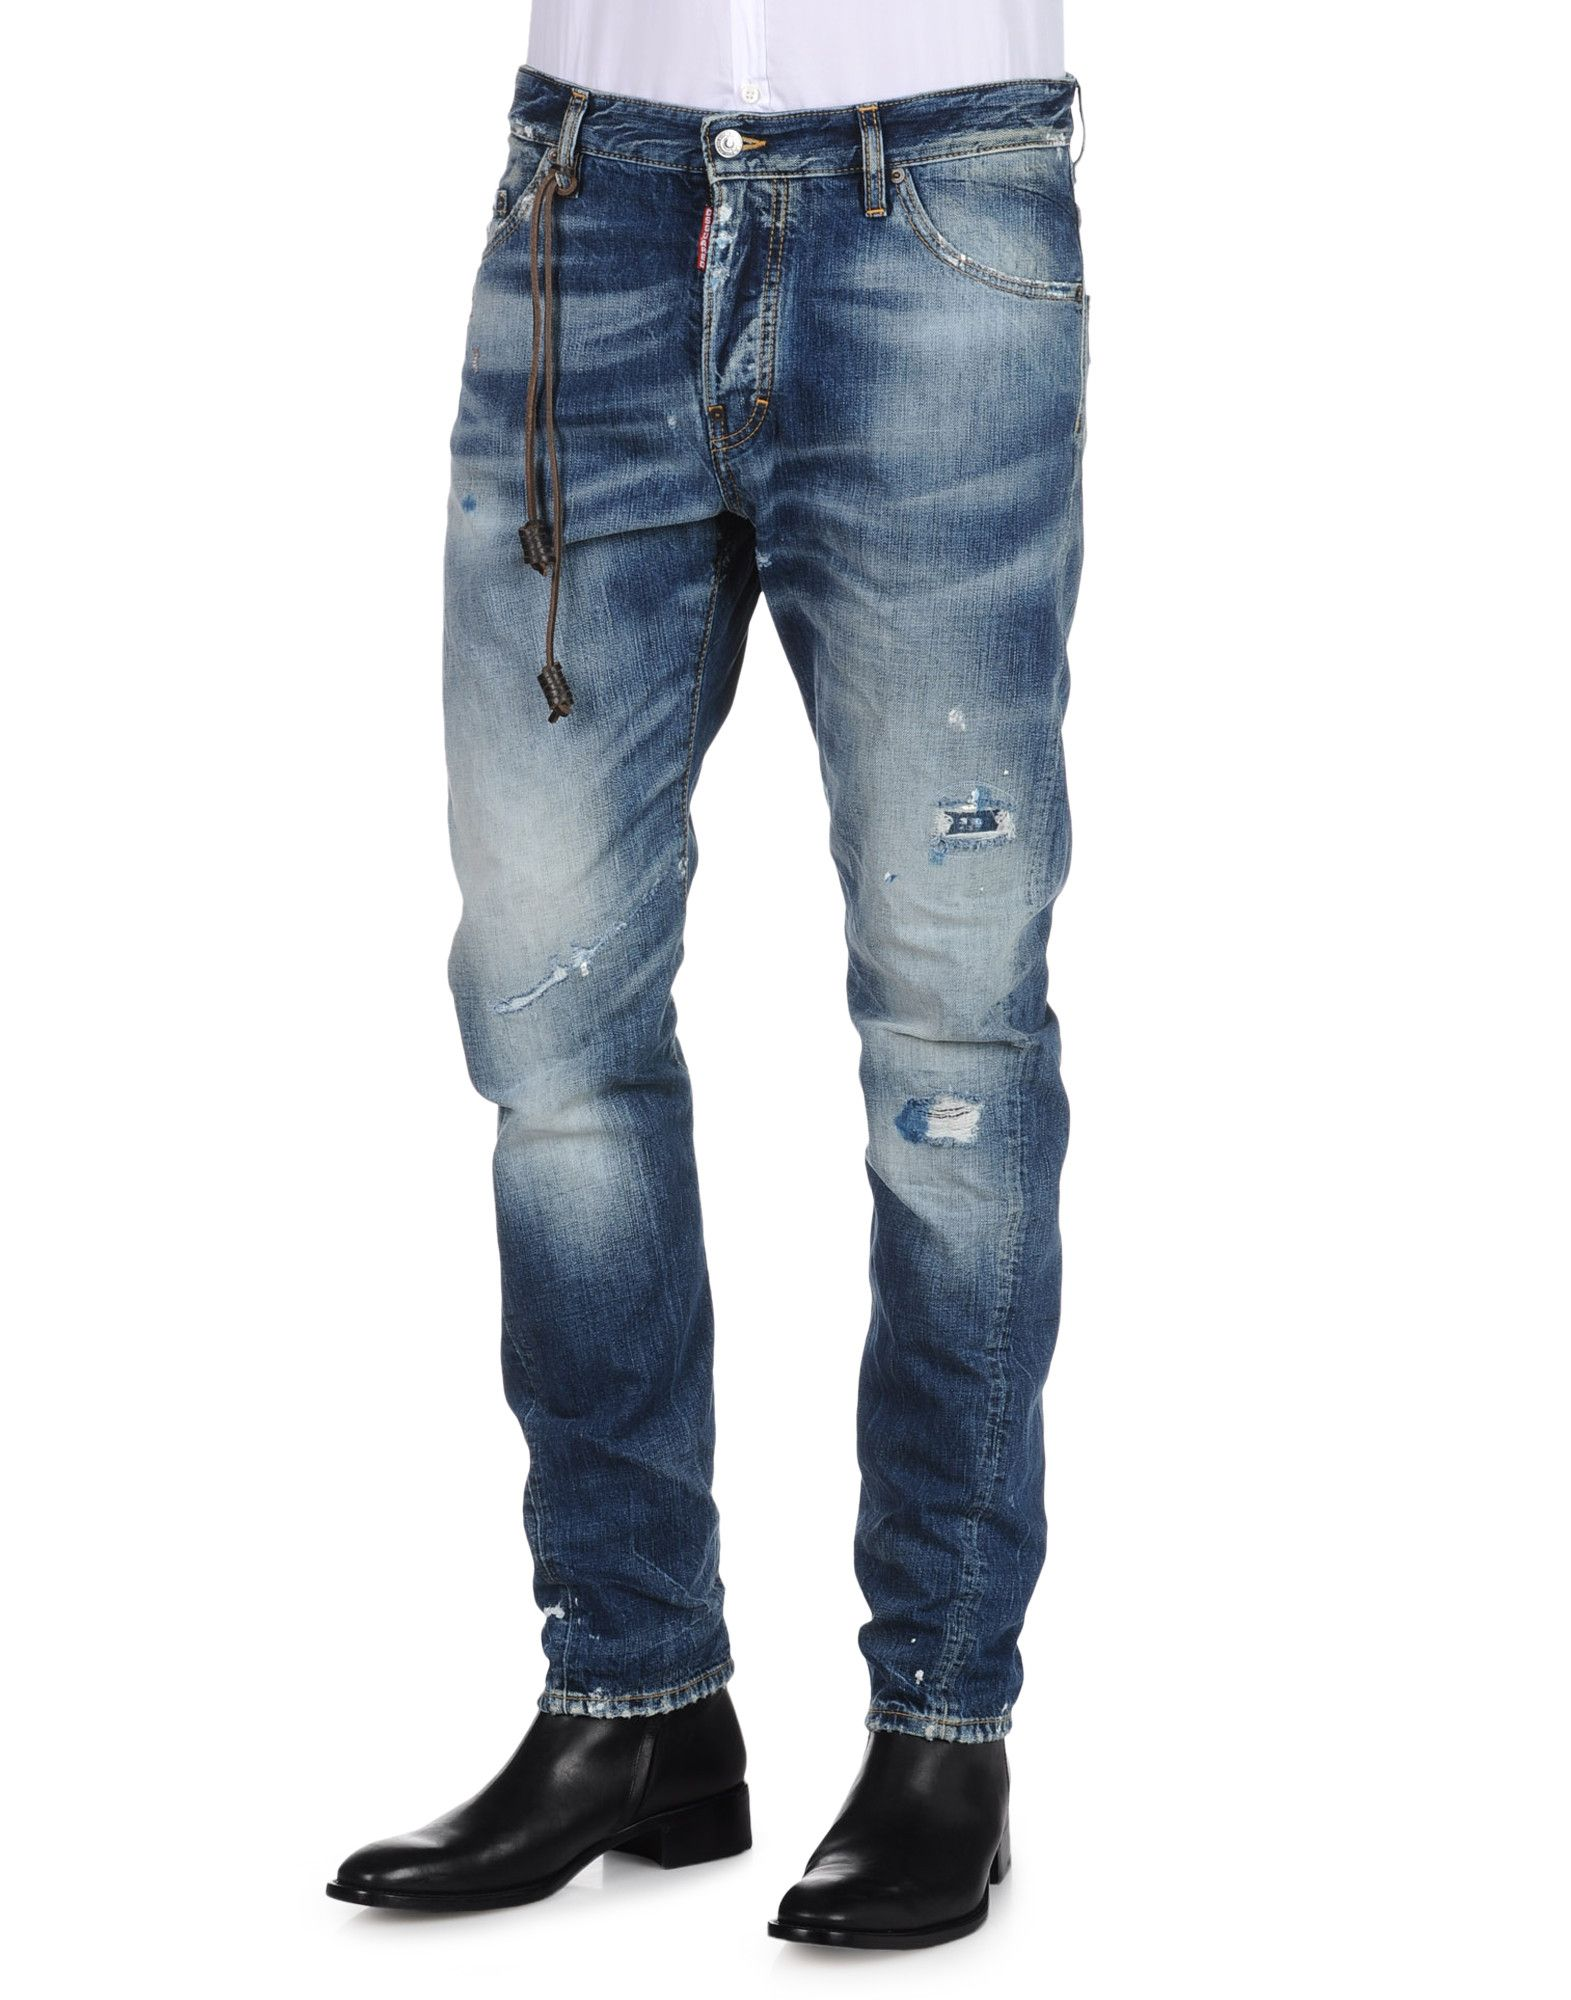 Men's Jeans DSQUARED2 - Official Online Store Portugal